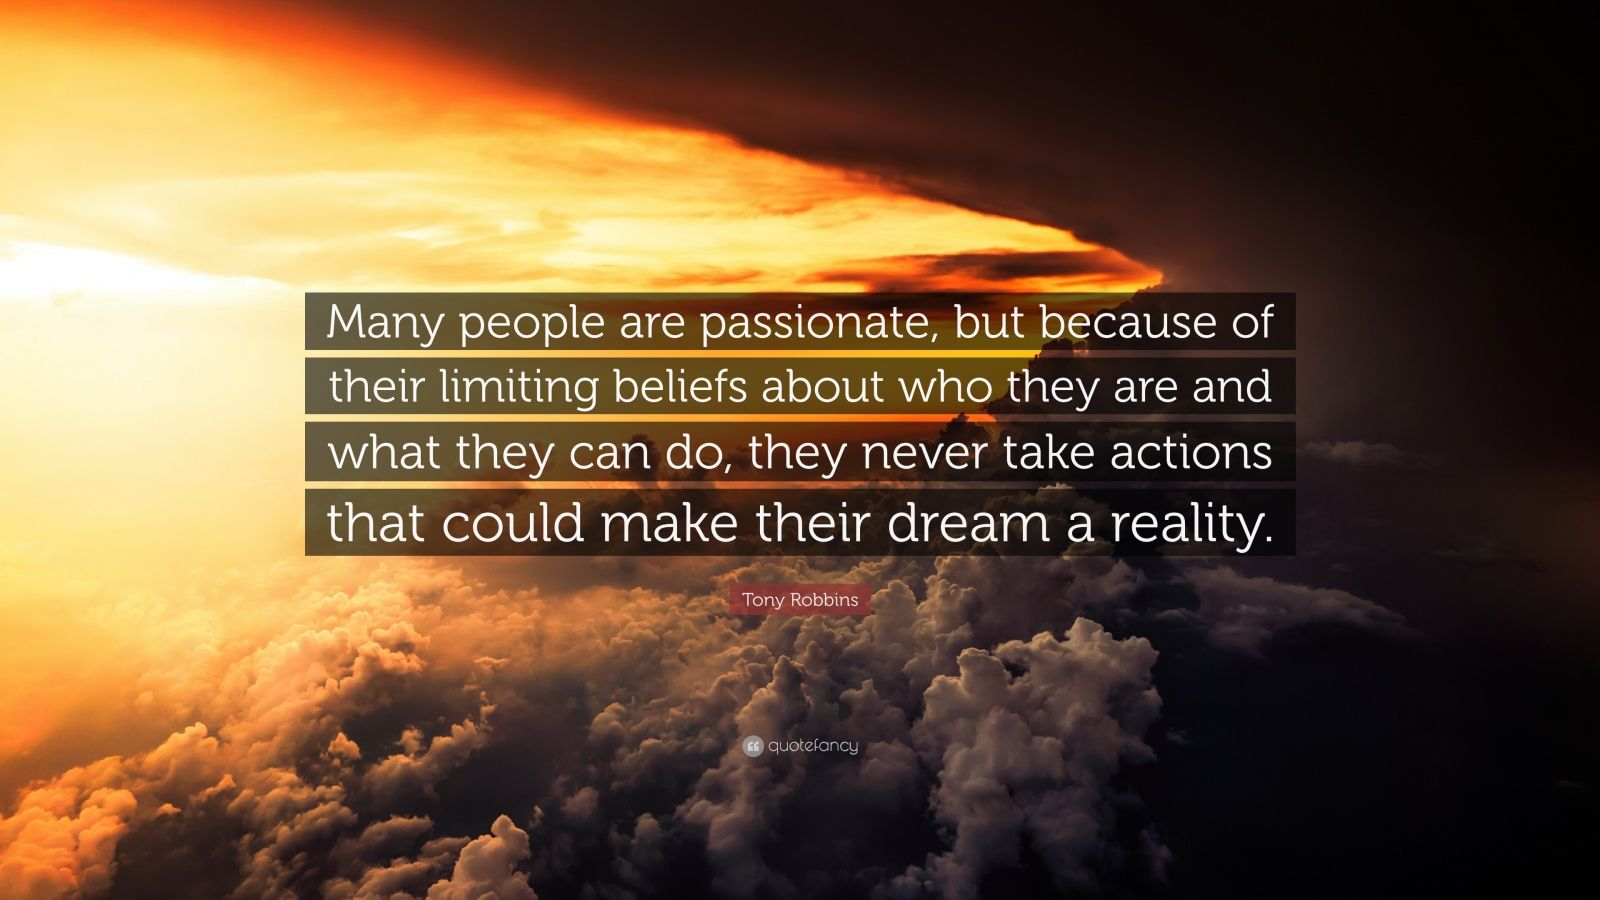 """Tony Robbins Quote: """"Many people are passionate, but because of their limiting beliefs about who they are and what they can do, they never take actions that could make their dream a reality."""""""